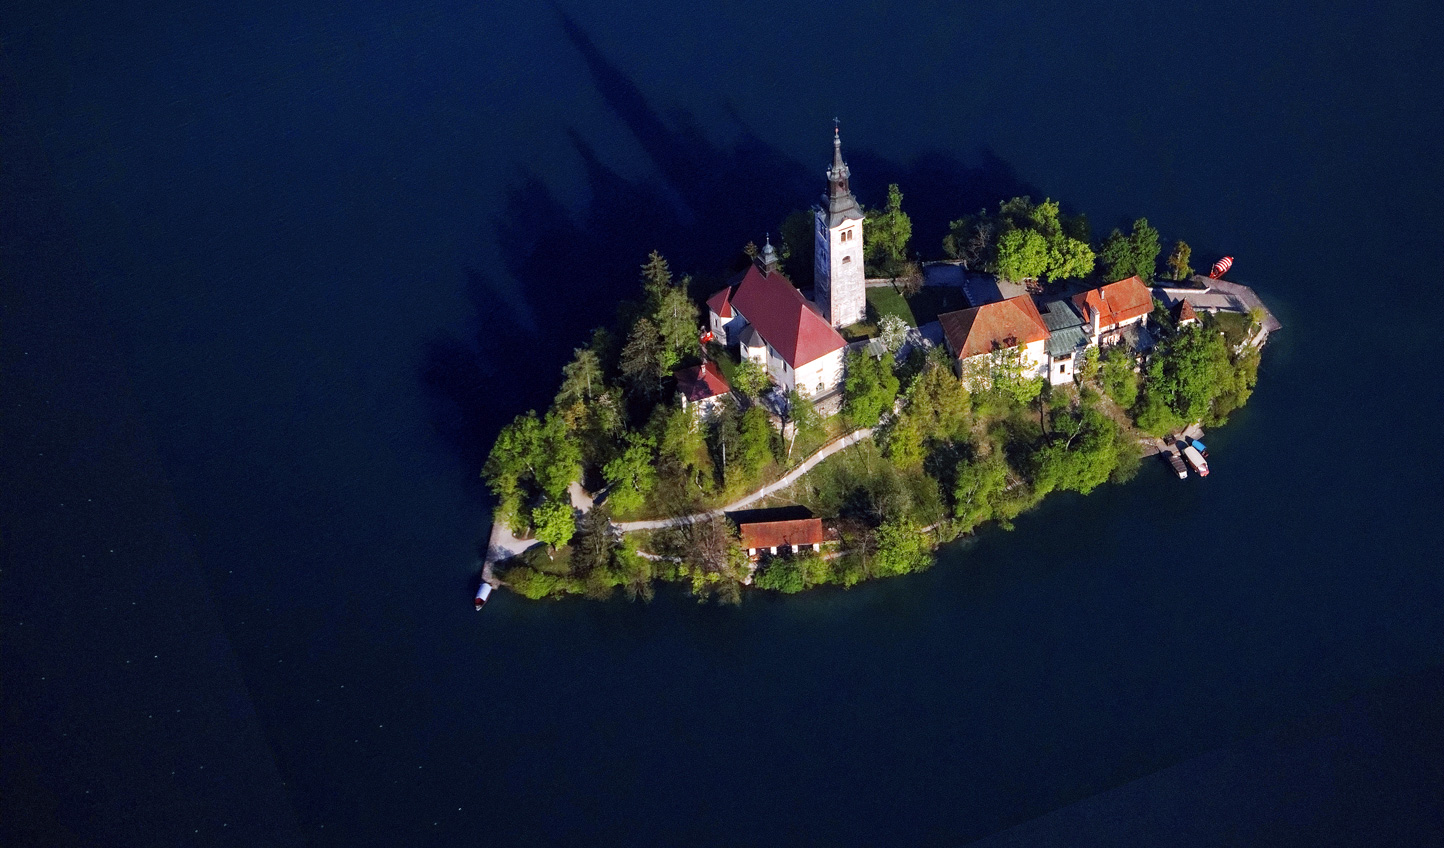 Explore the island that lies at the heart of Lake Bled